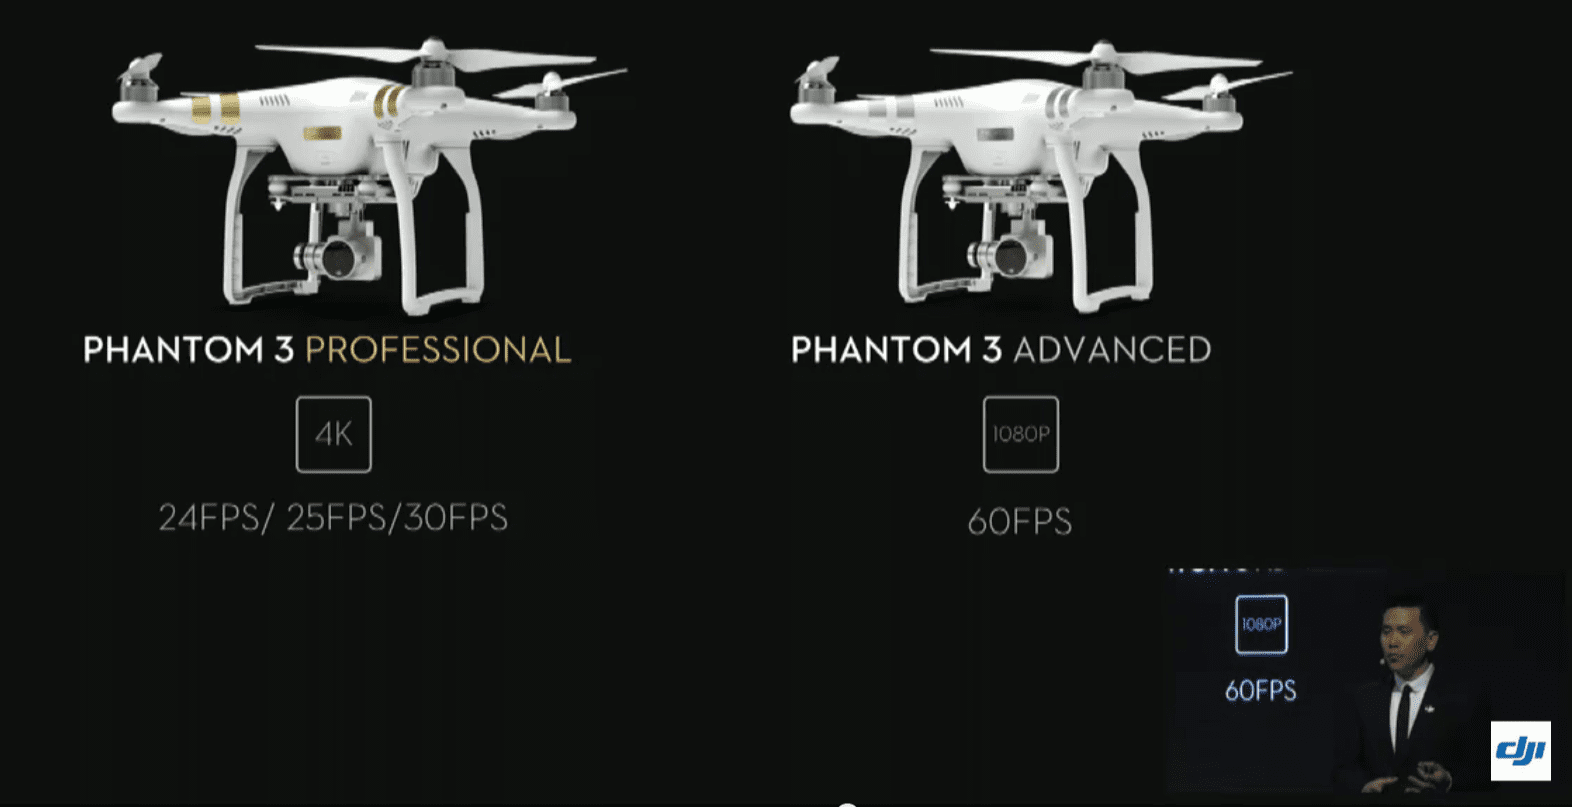 Phantom 3 Pro and Phantom 3 Advanced